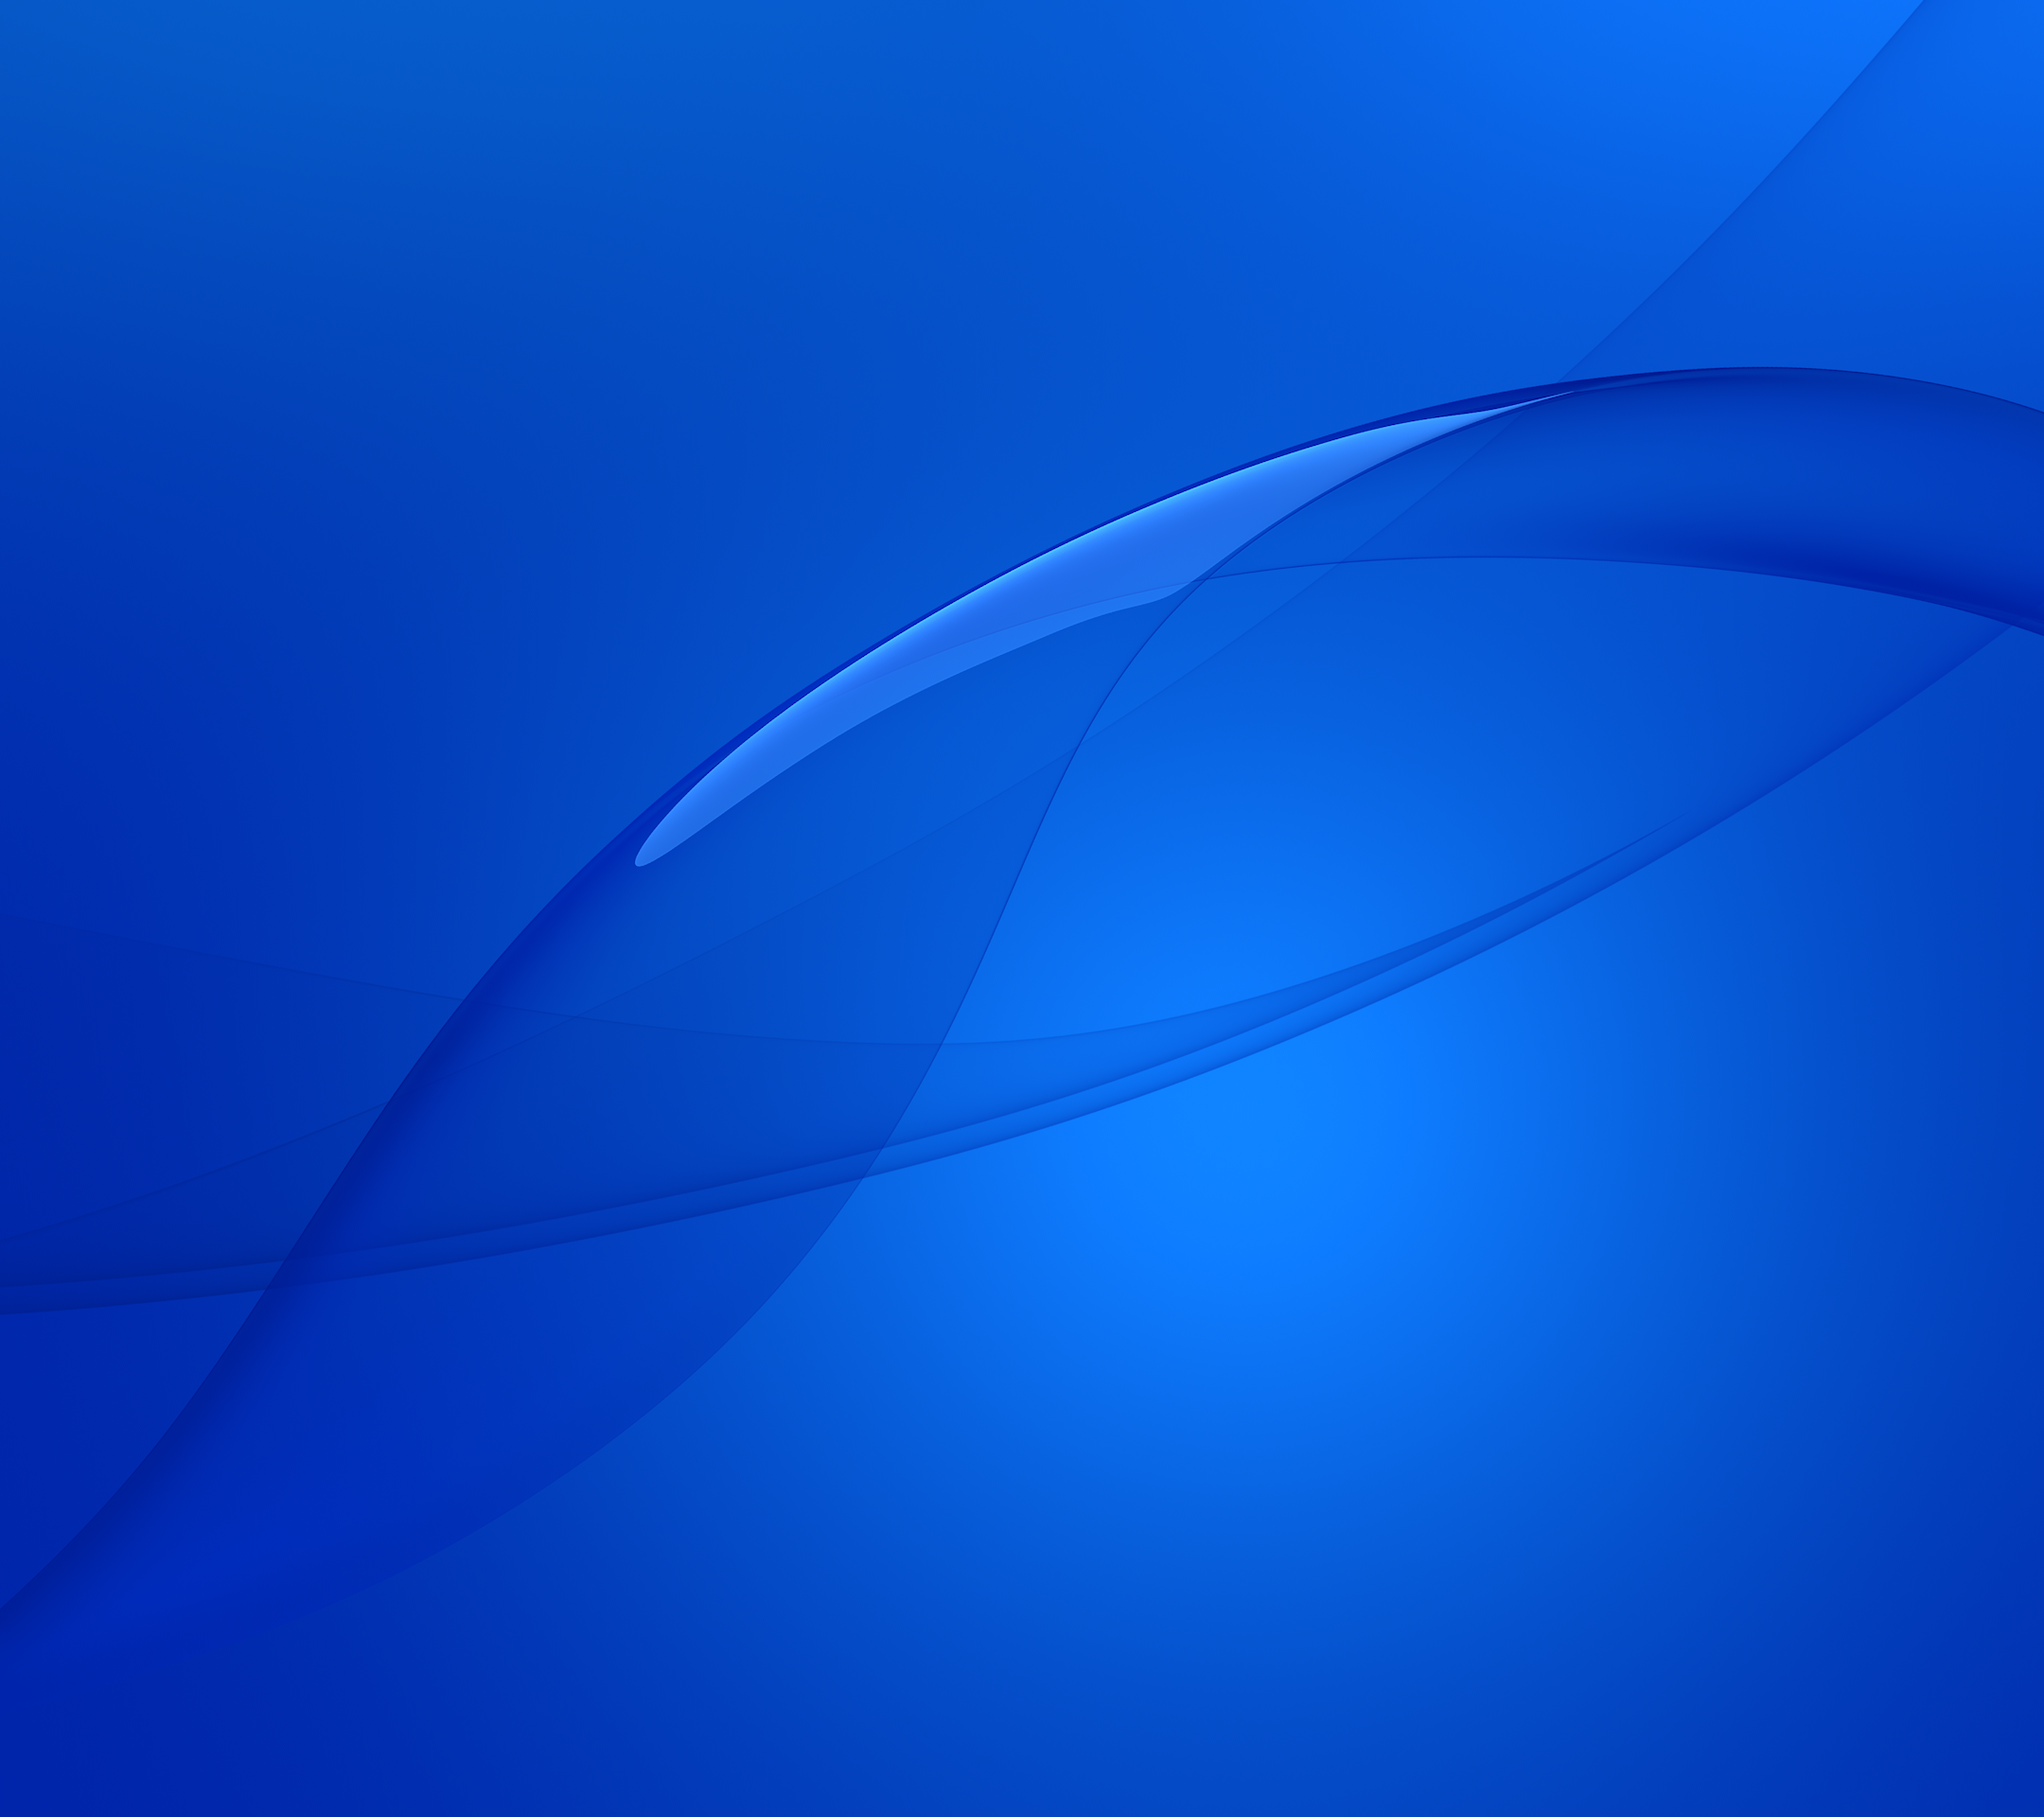 sony xperia z3 wallpapers available for download | talkandroid